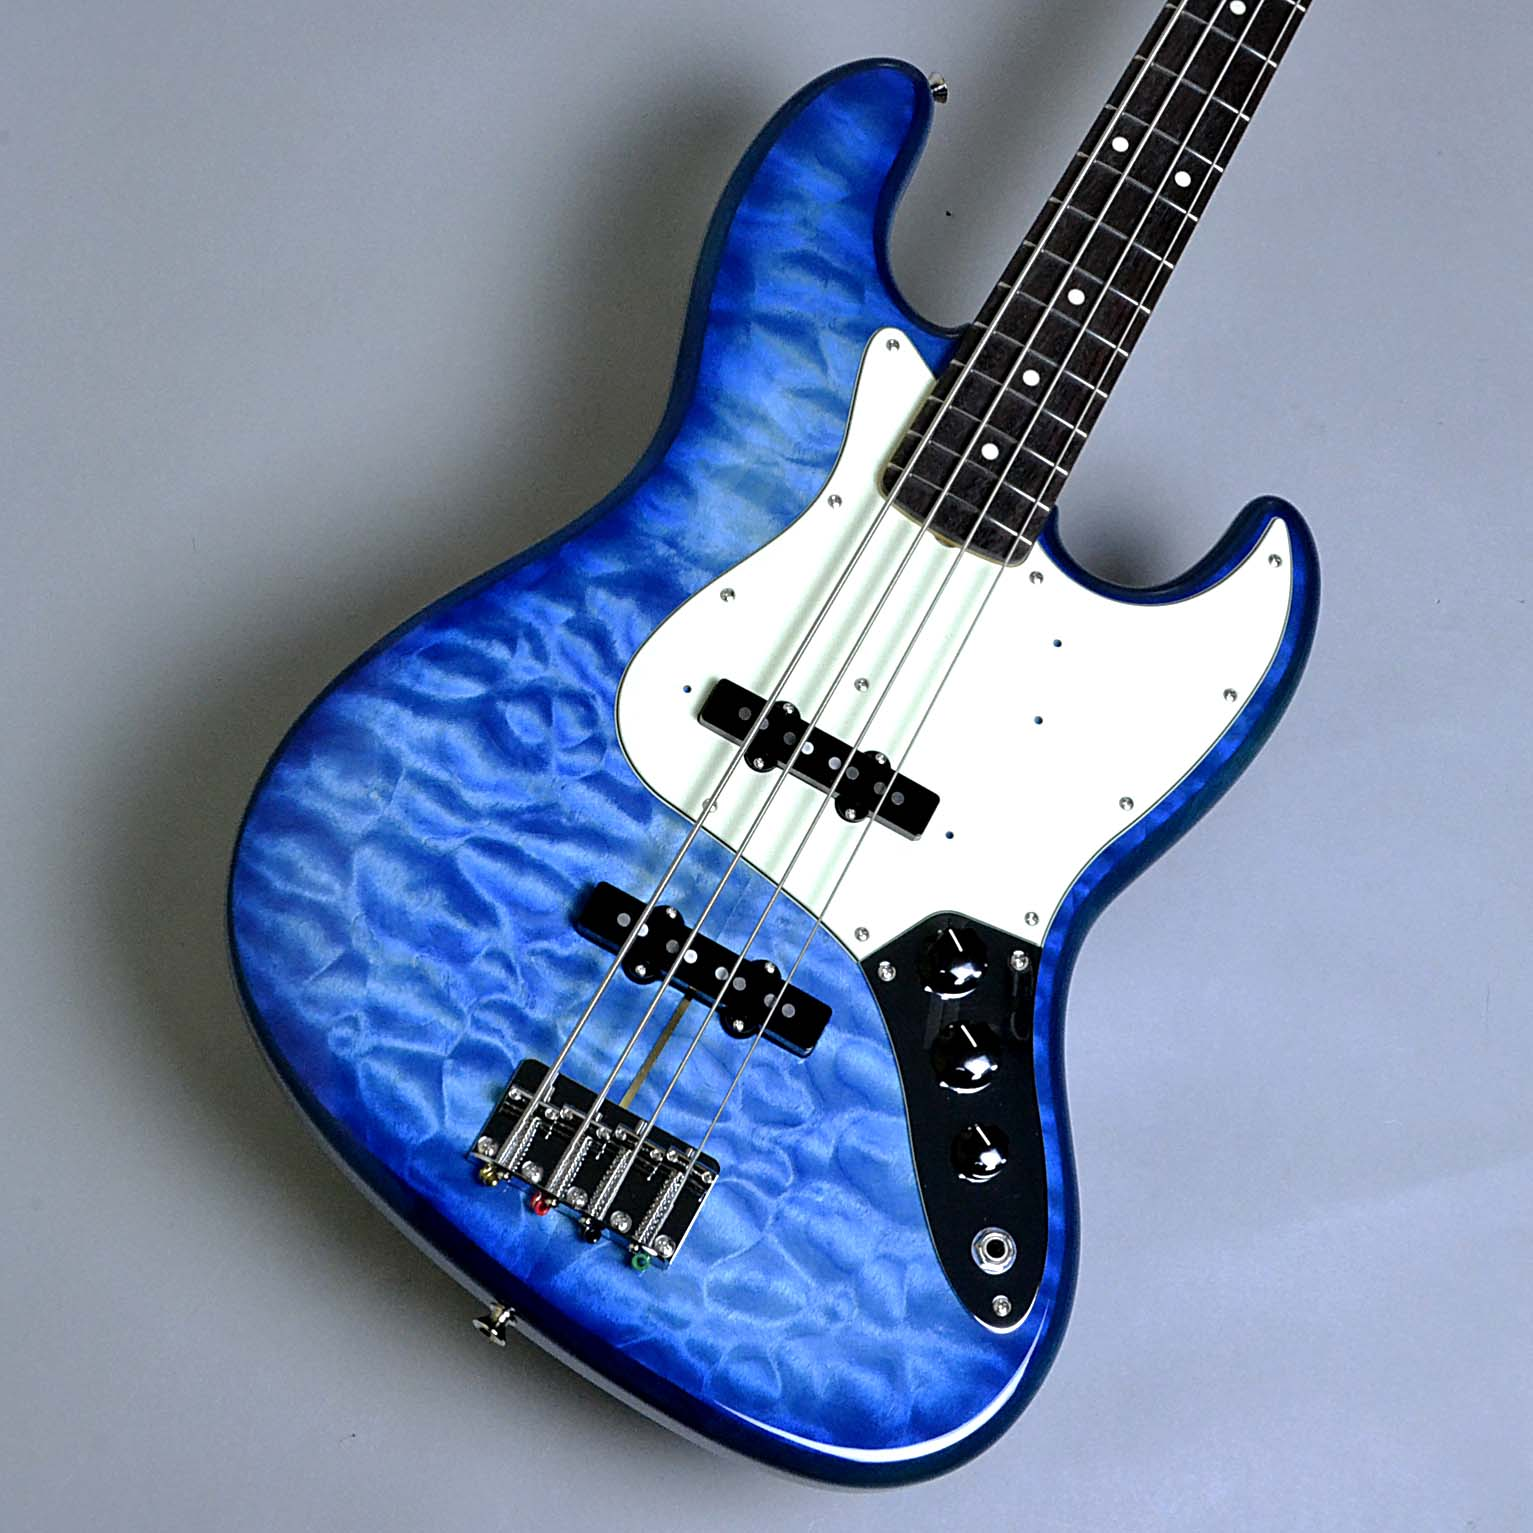 【フェンダー】  Made in Japan Hybrid 60s Jazz Bass Quilt Top Transparent Blue Limited Editionのボディトップ-アップ画像